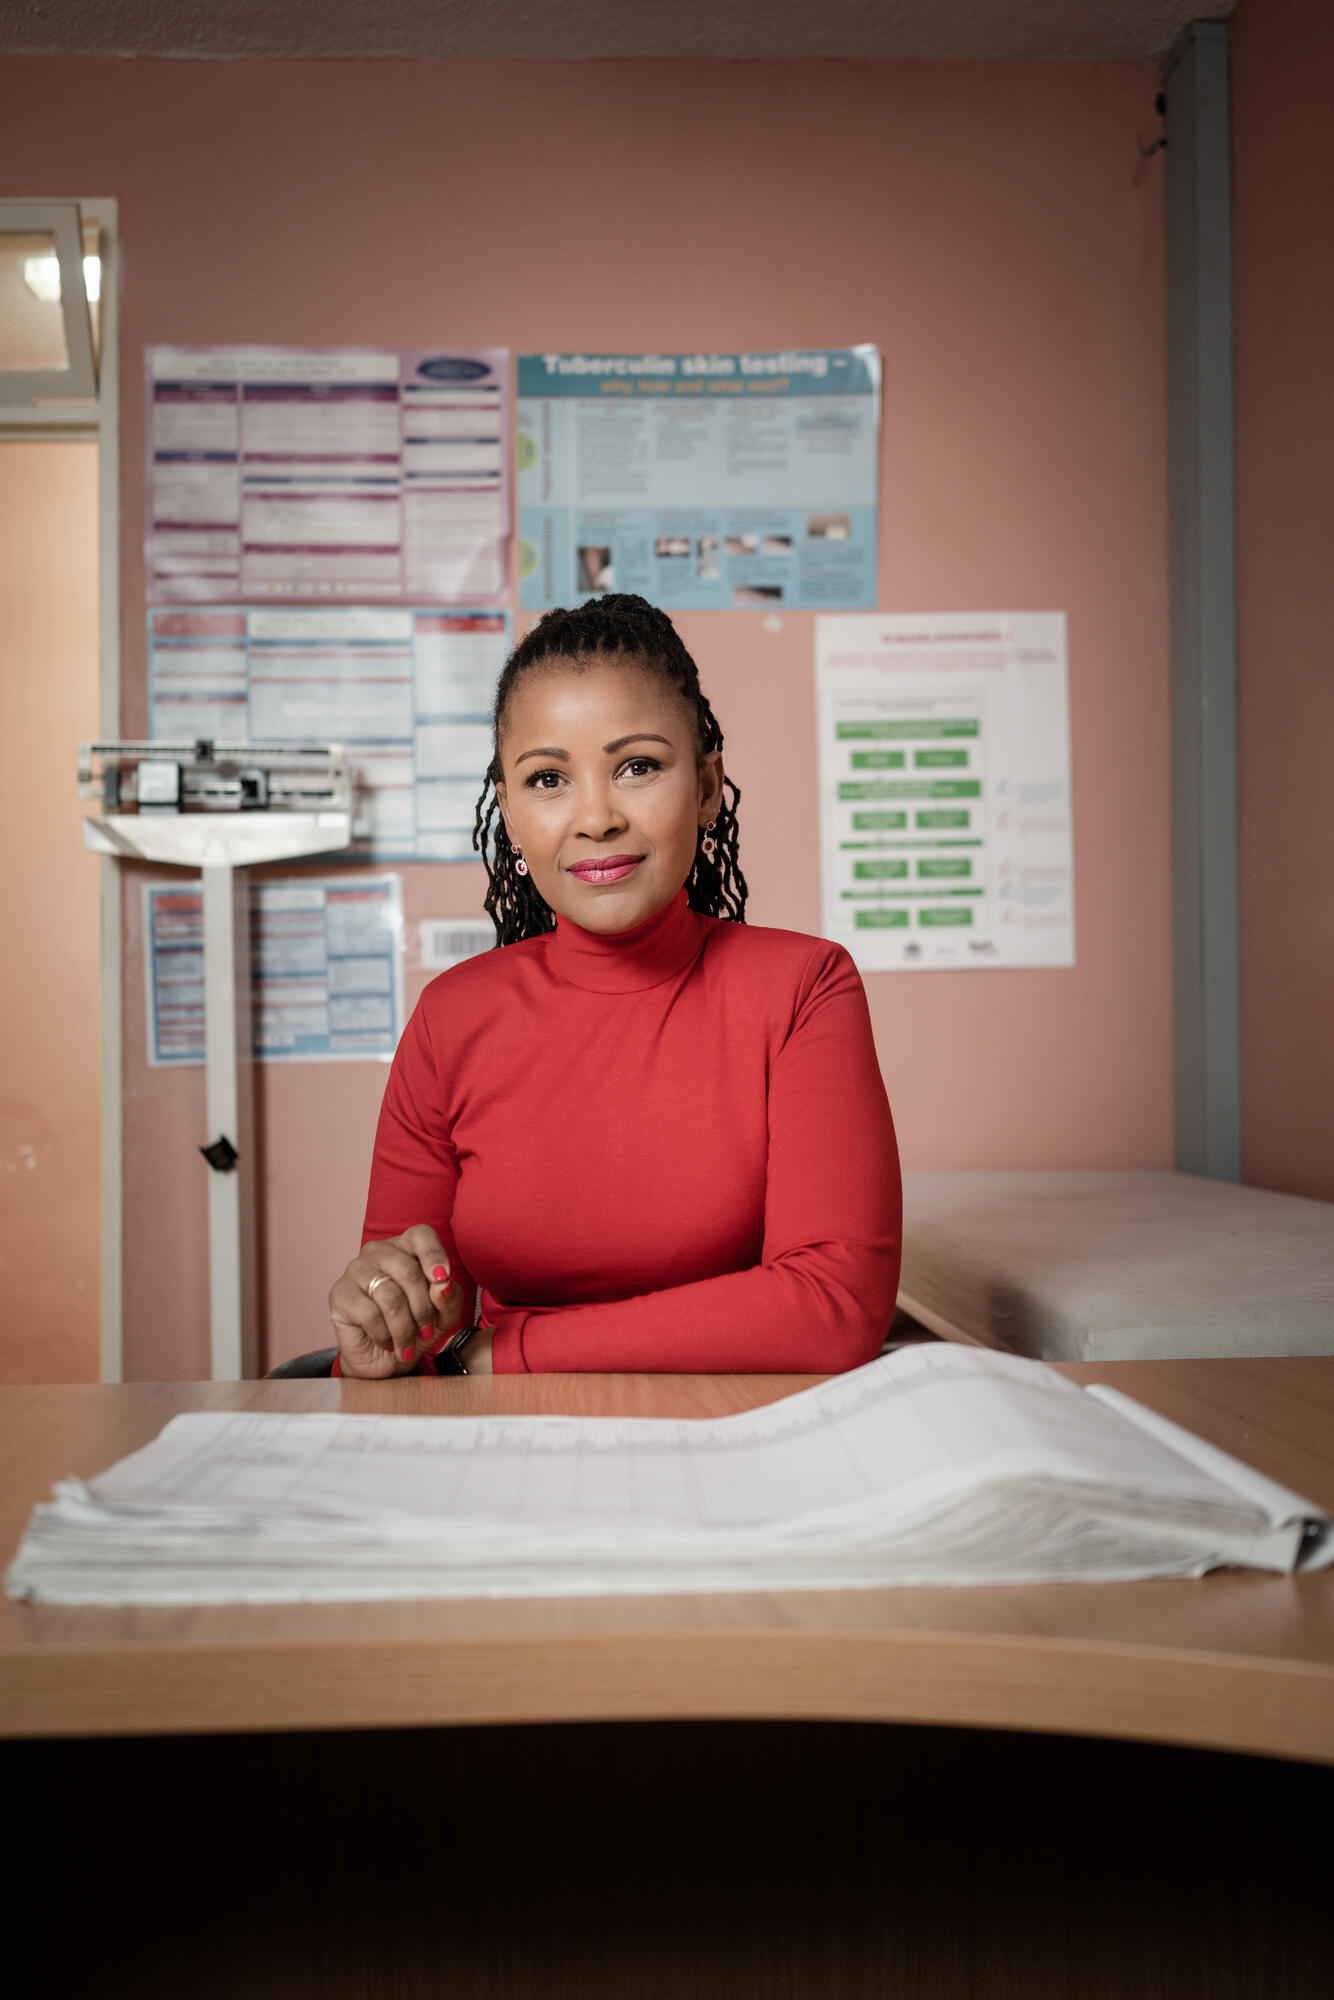 Gerry Elsdon has been raising awareness around TB since being diagnosed in 2002.